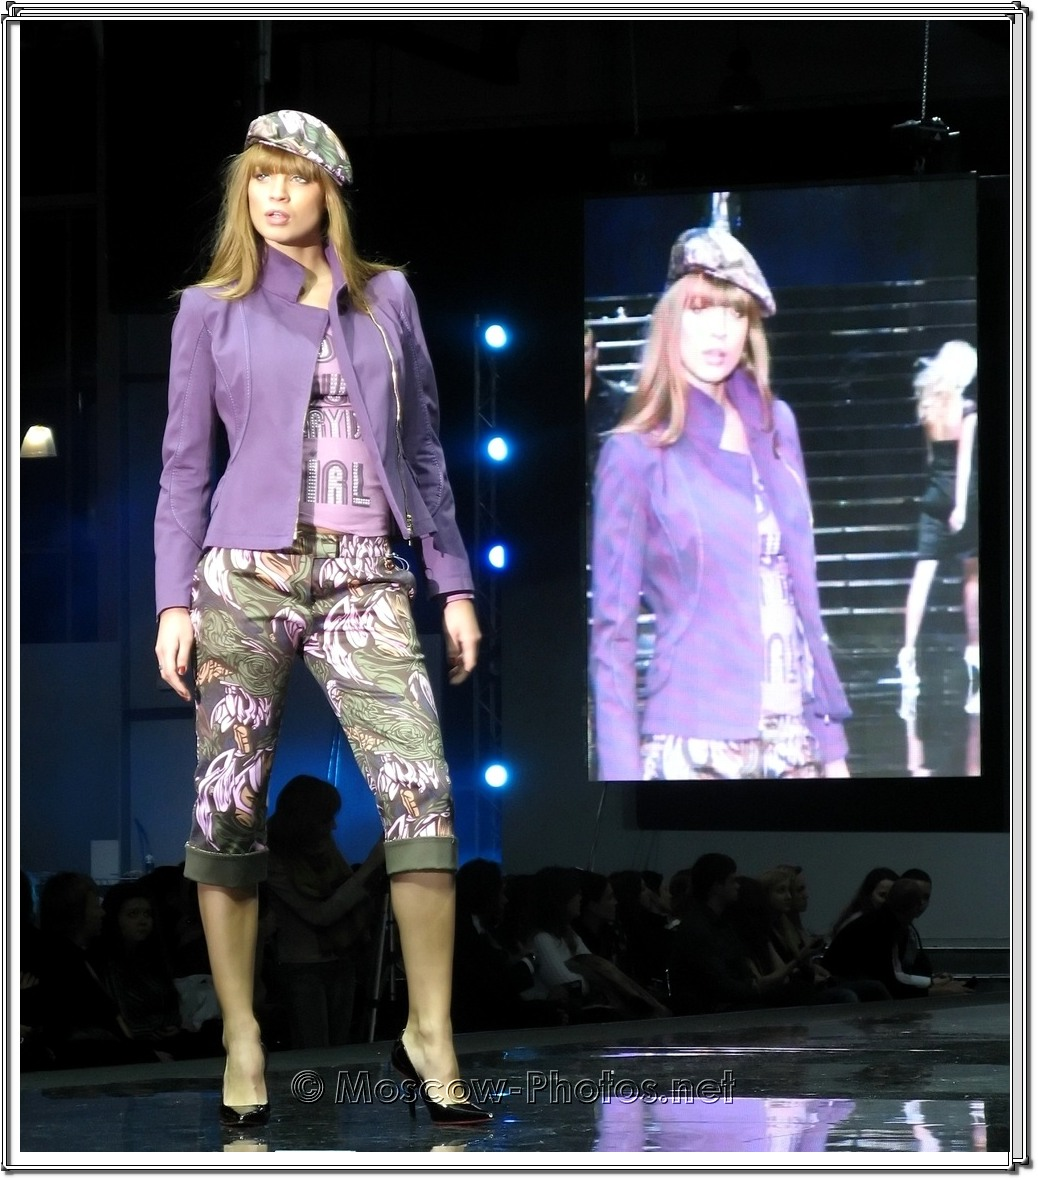 Moscow Fashion Expo - 2007